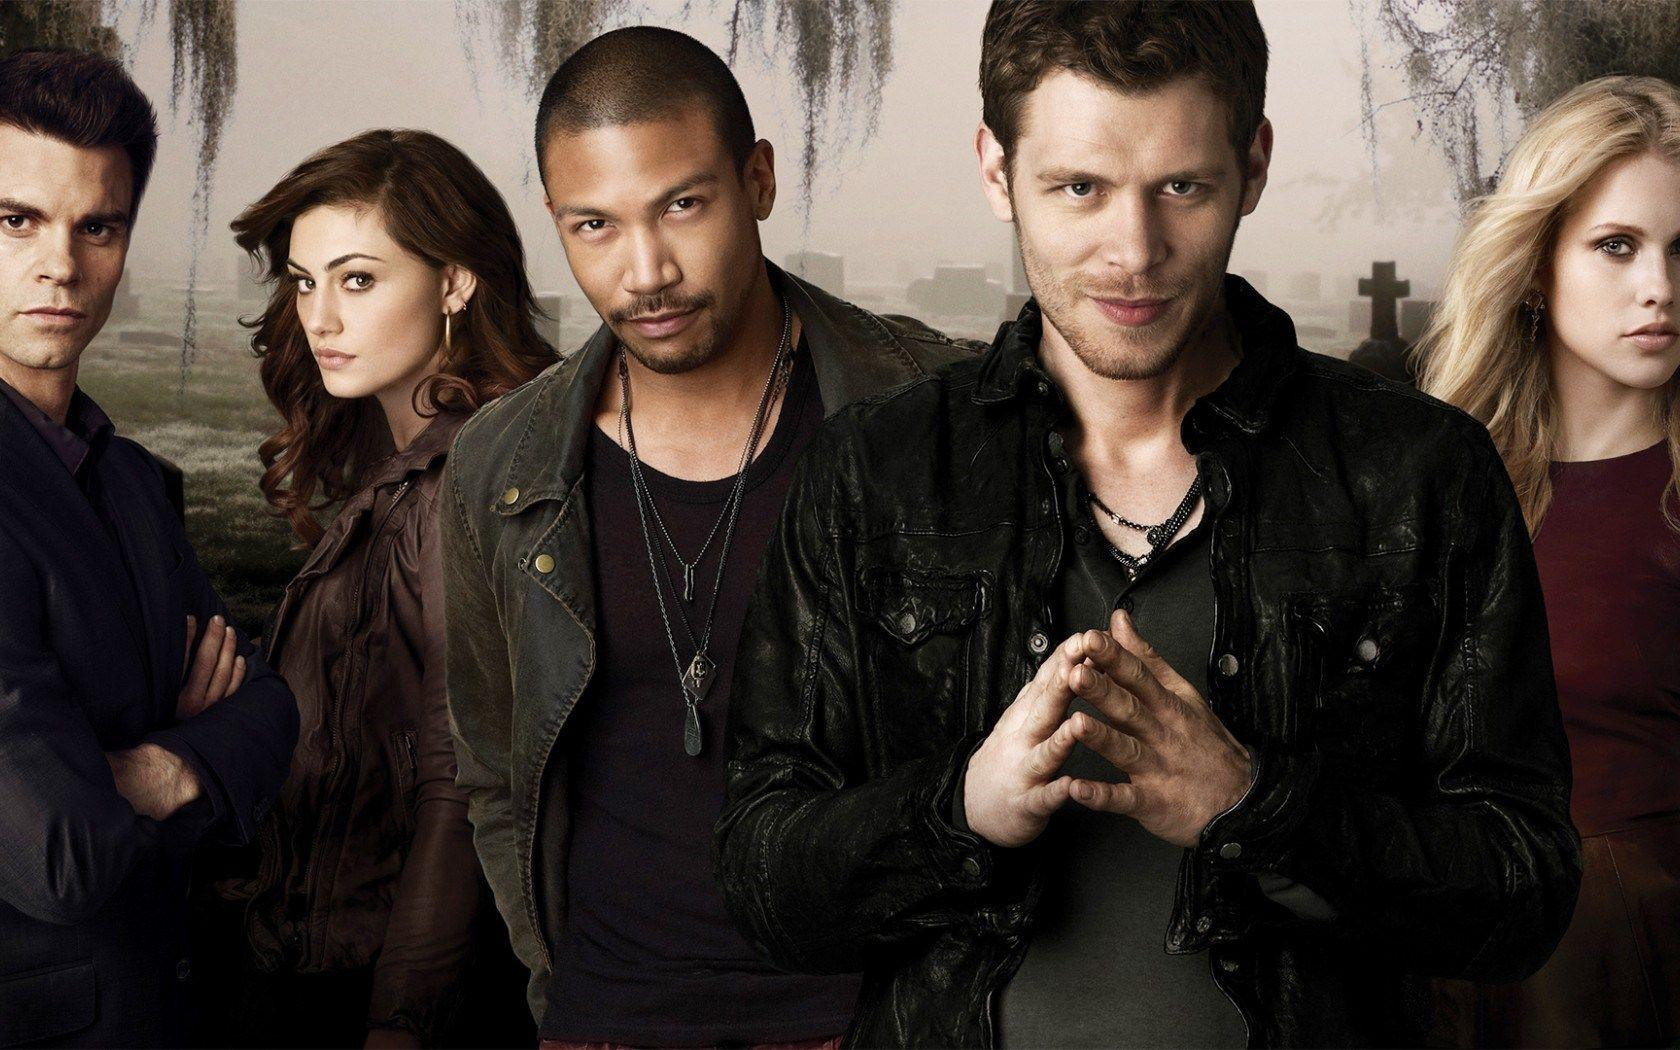 joseph morgan, the vampire diaries, actor, chair, klaus, hd wallpapers